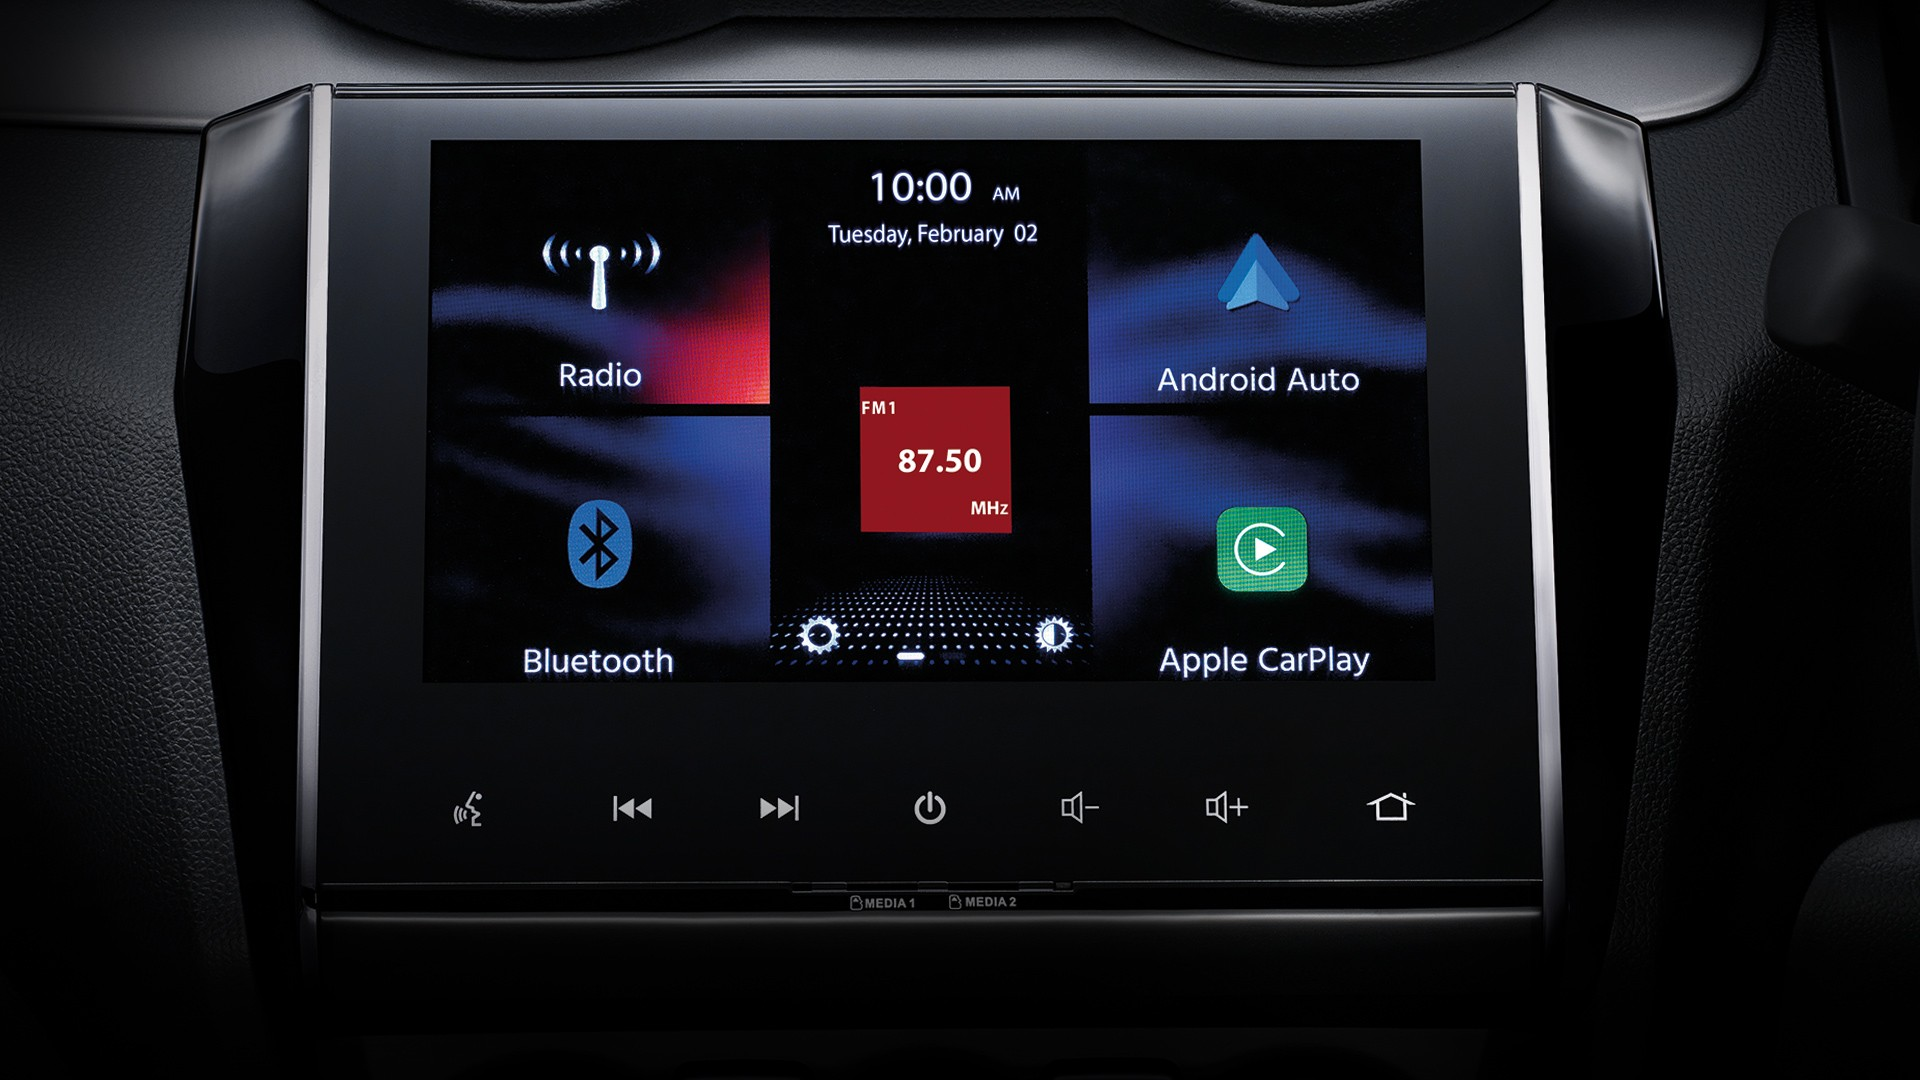 8-inch display touch screen               for the full function entertainment               comes with Apple CarPlay